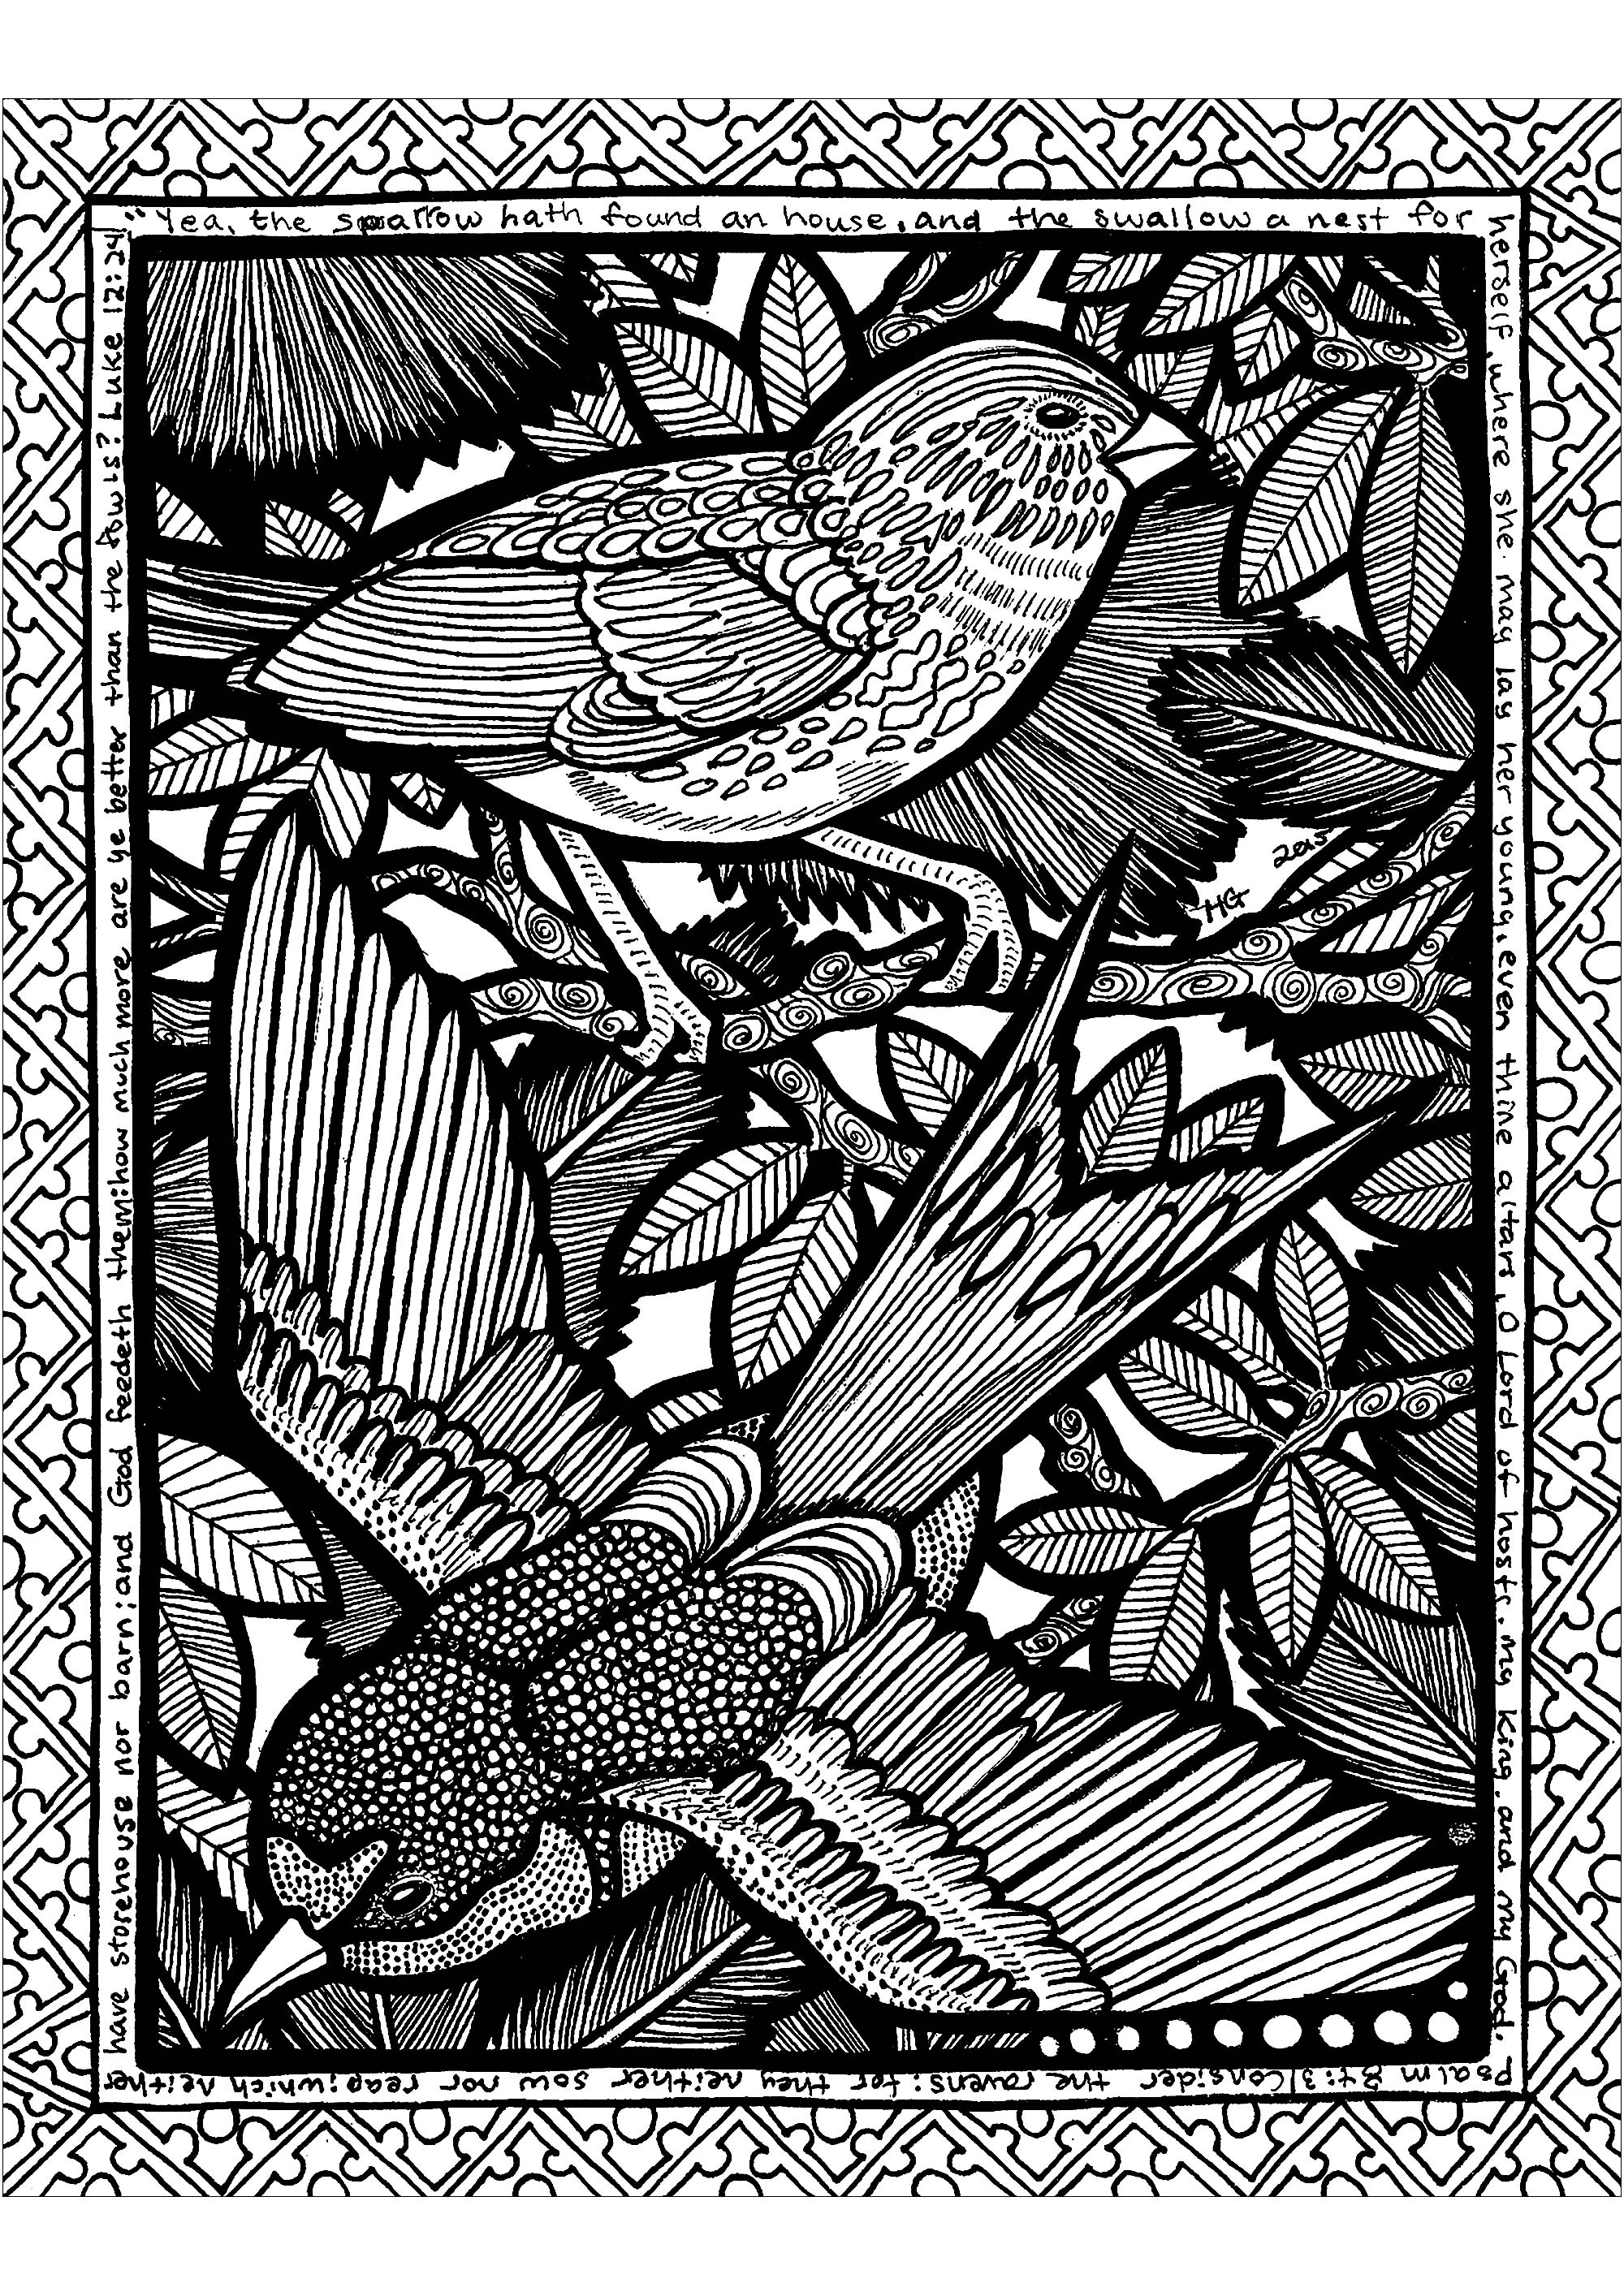 Fly into the Zentangle with those beautiful birds.